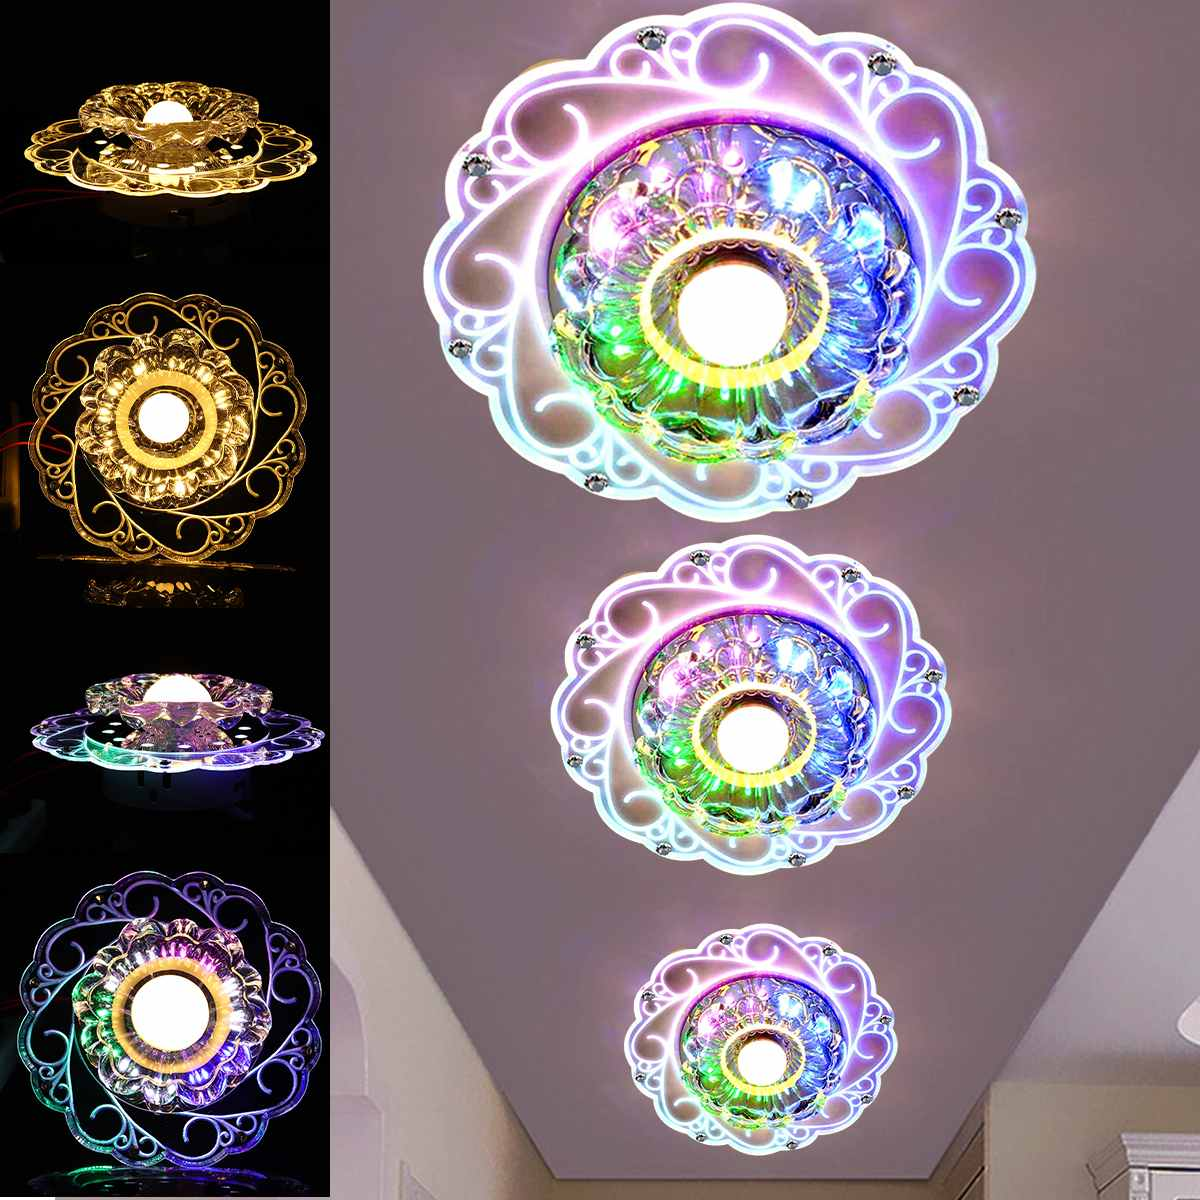 3W/5W 85-265V Modern LED Crystal Ceiling Light Circular Mini Ceiling Lamp Rotunda Light For Living Room Aisle Corridor Kitchen